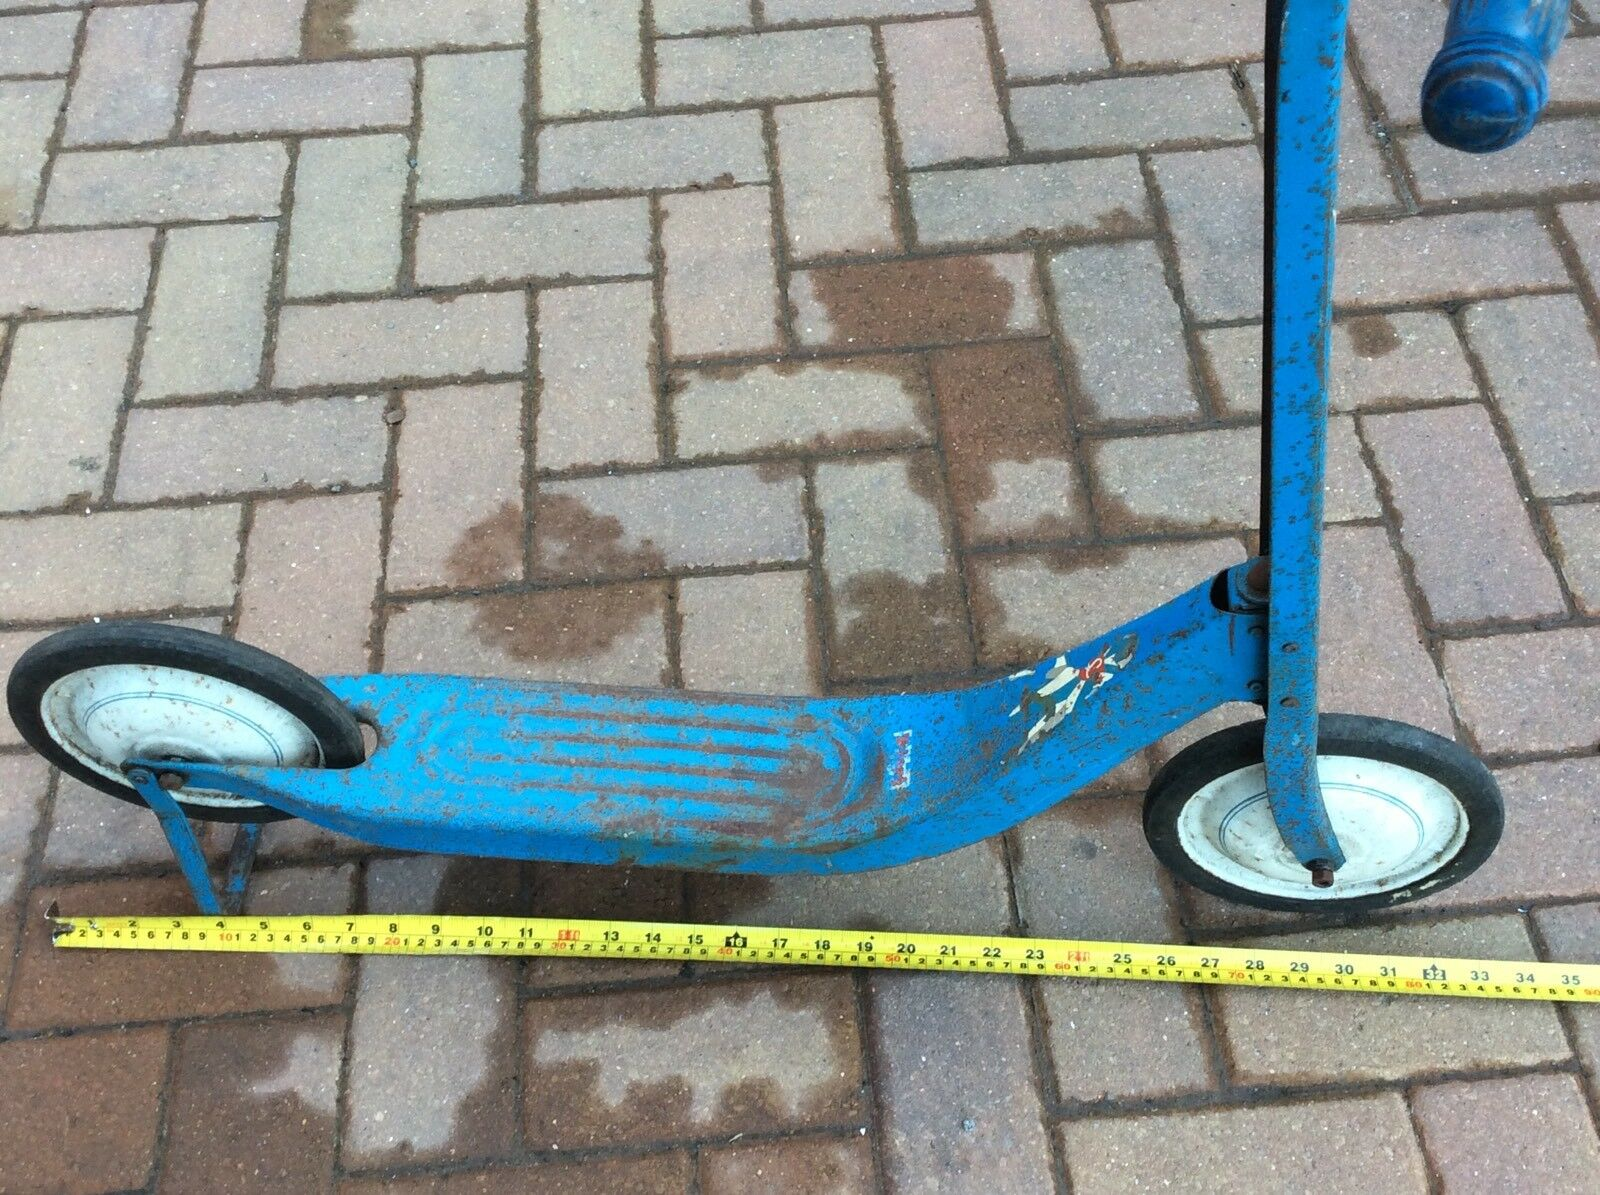 Triang Vintage bluee & & & White Pedal Scooter - (Tri-Ang) - Antique Toy d54385